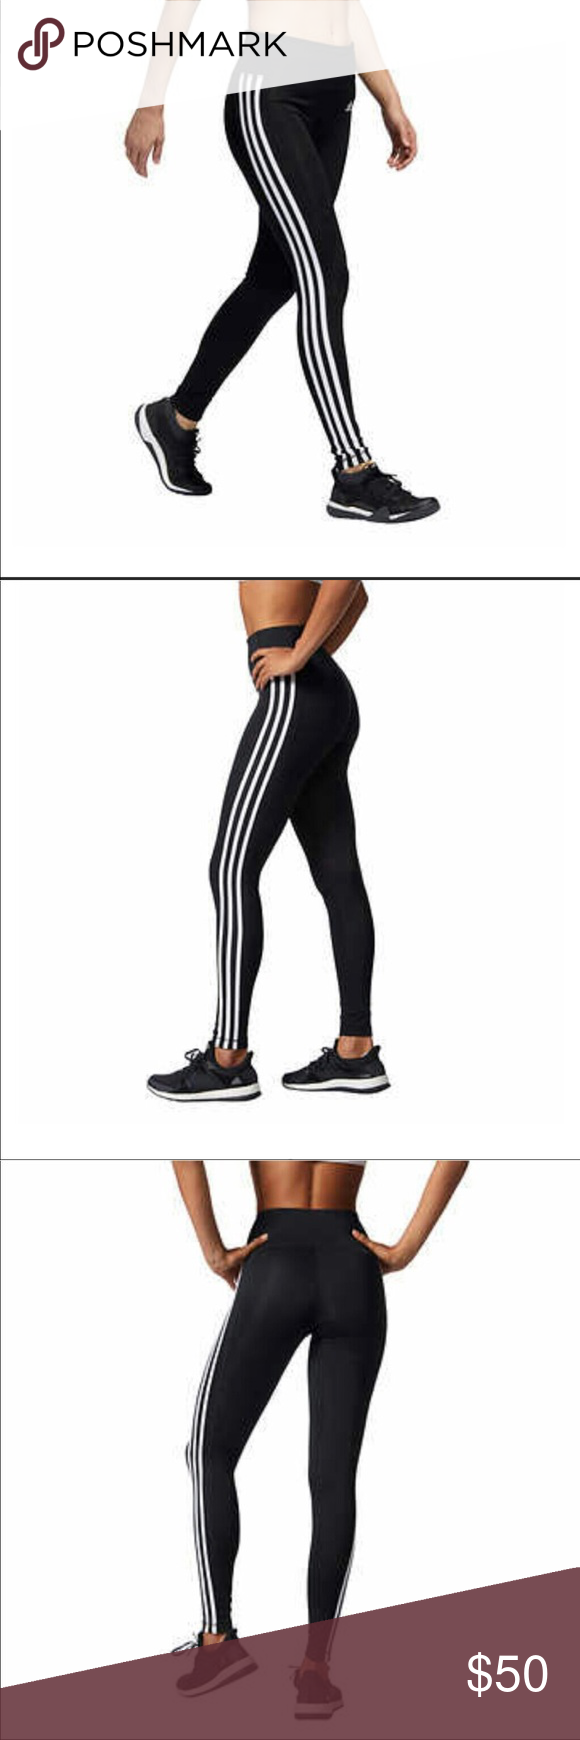 19639dea84607 Adidas Climate 3 Stripe Leggings Woman's Adidas 3 stripe Leggings NWT  Climate control High waisted Nice waist band with hidden pocked in back  waist band New ...